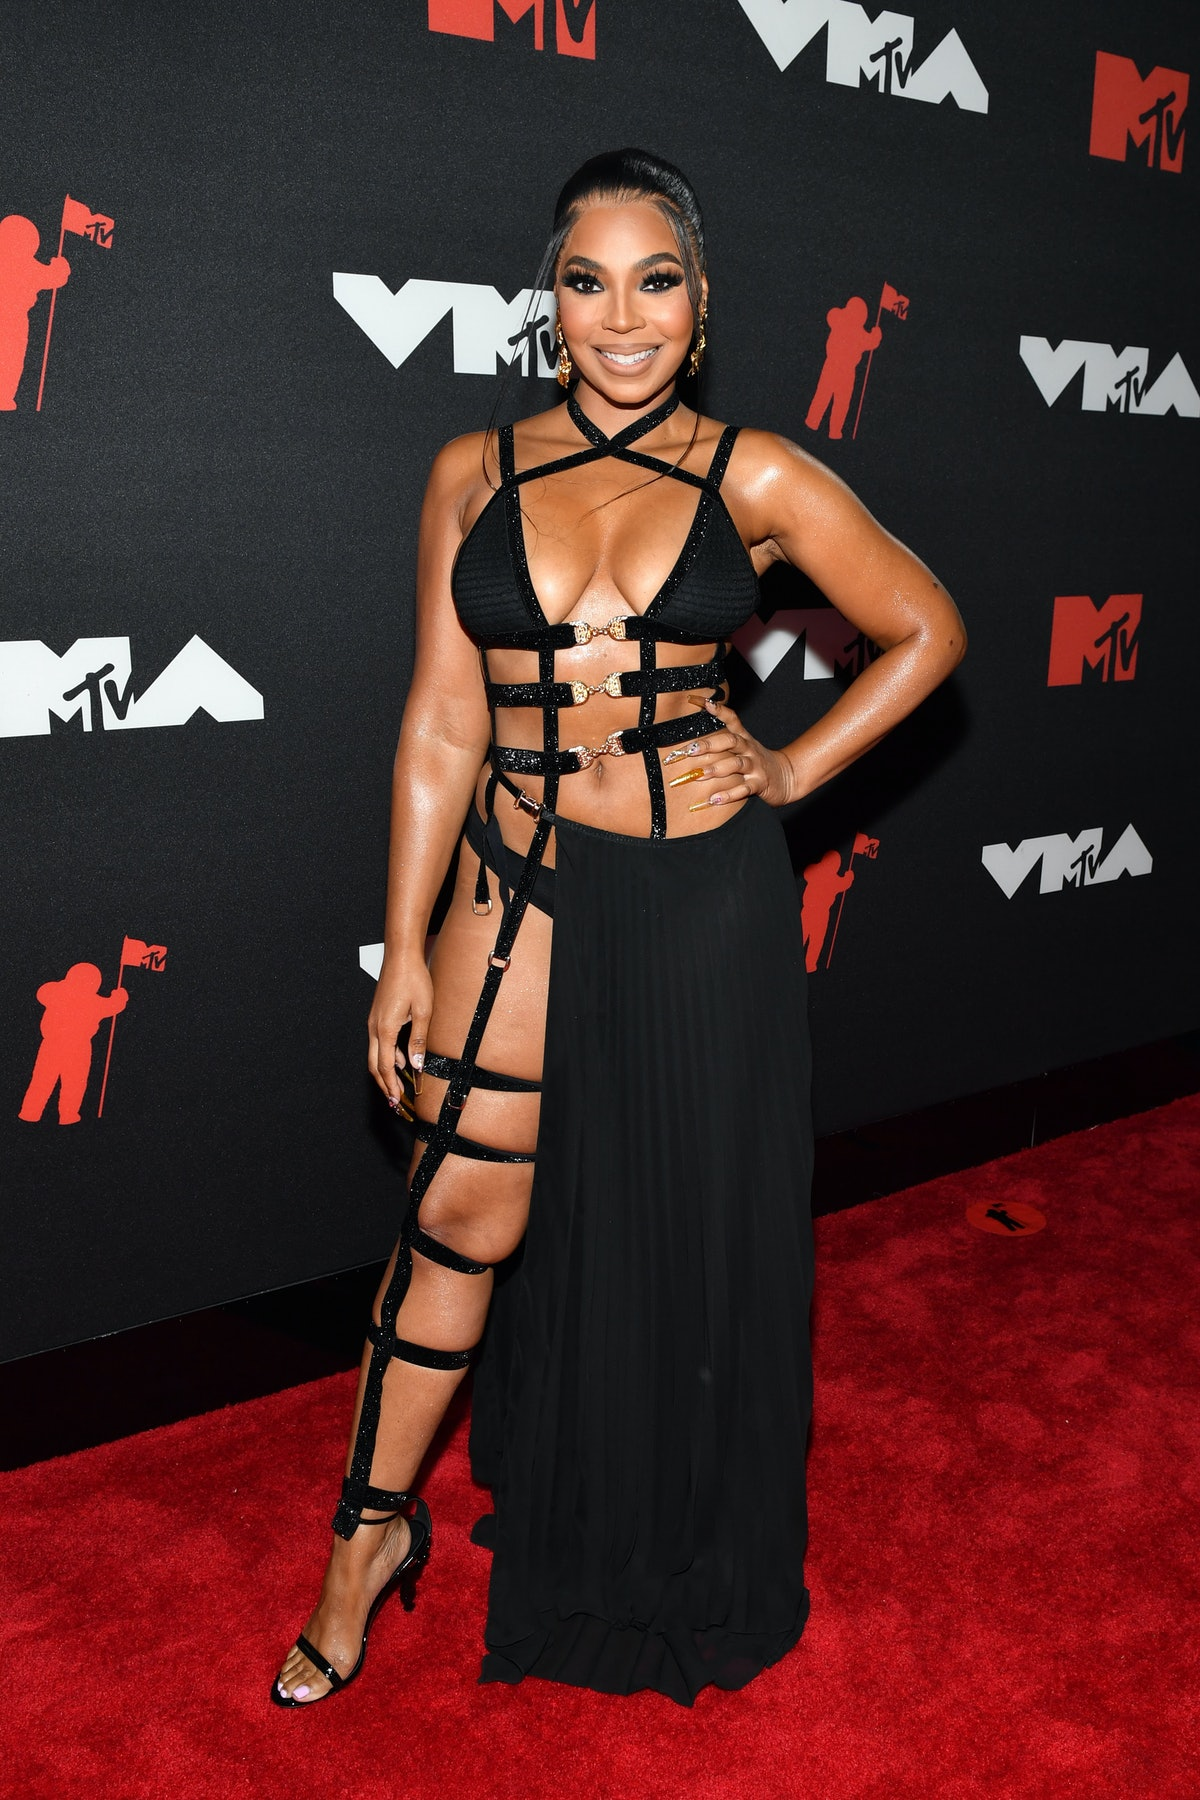 Ashanti attends the 2021 MTV Video Music Awards at Barclays Center on September 12, 2021 in the Broo...